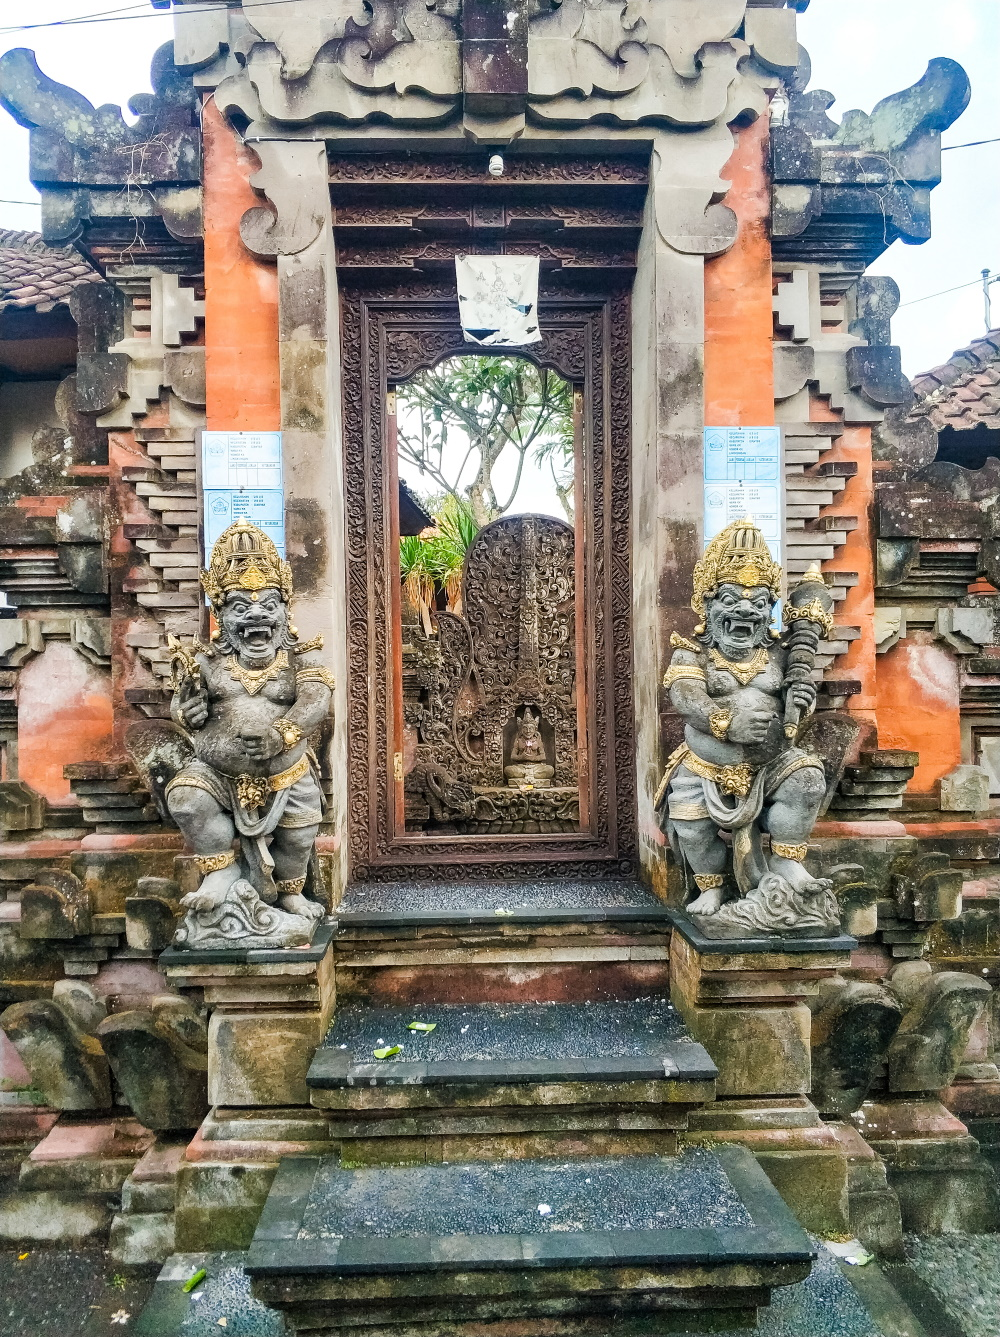 The beautiful doors and gates of Ubud, Bali.